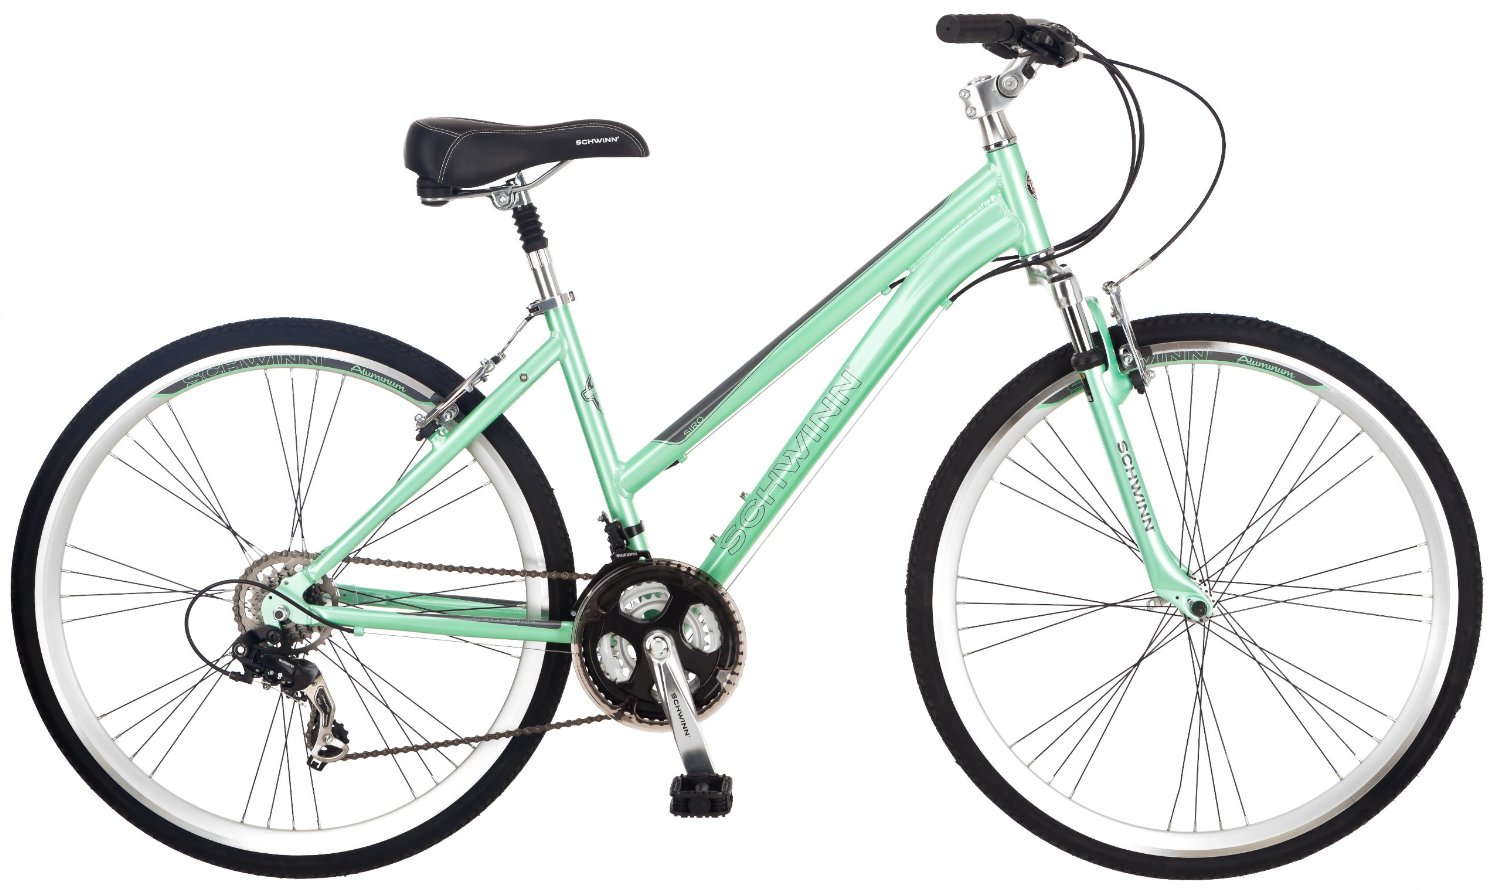 Best Hybrid Bikes for Women - Reviews and Buyer's Guide